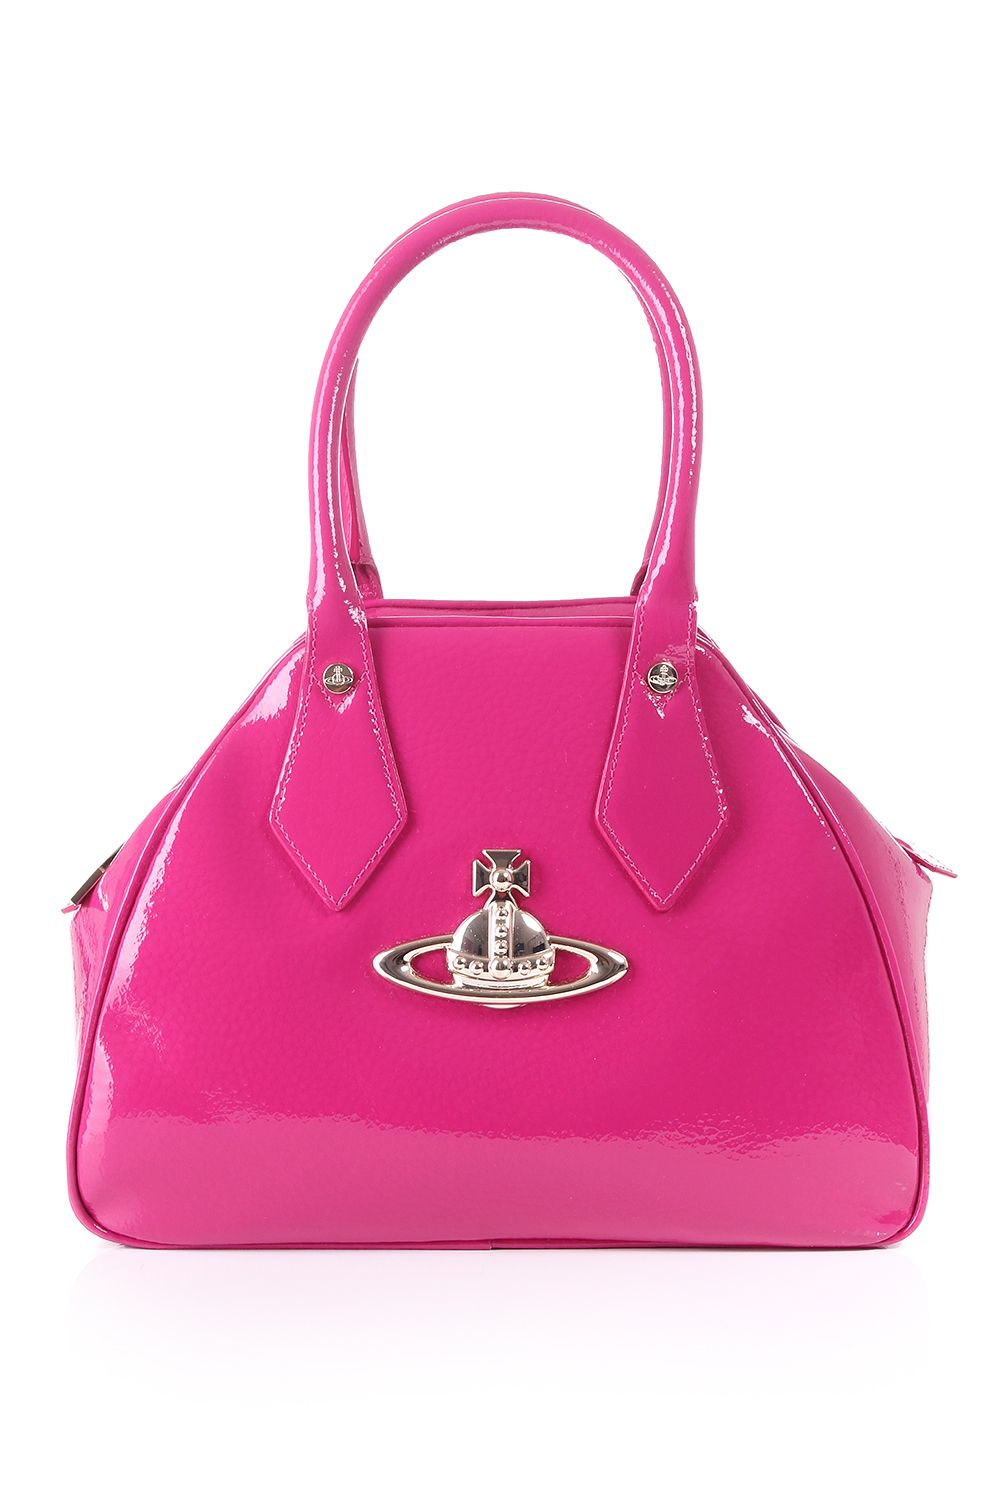 4359fbe171 Vivienne Westwood pink patent leather Yasmine bag. http://www.blueberries-